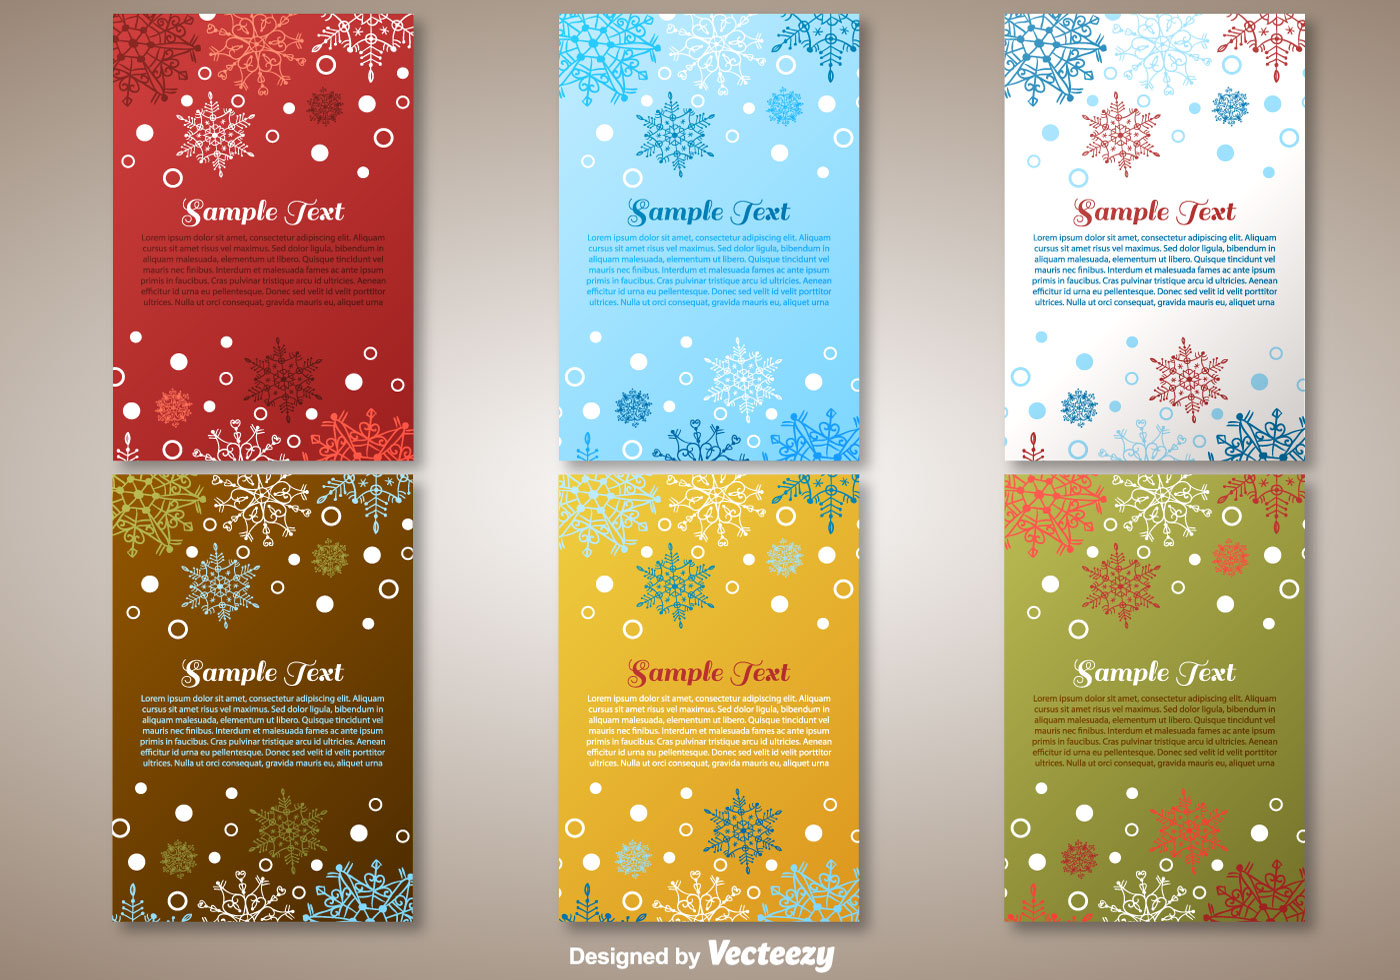 Christmas greetings cards download free vector art stock graphics christmas greetings cards download free vector art stock graphics images m4hsunfo